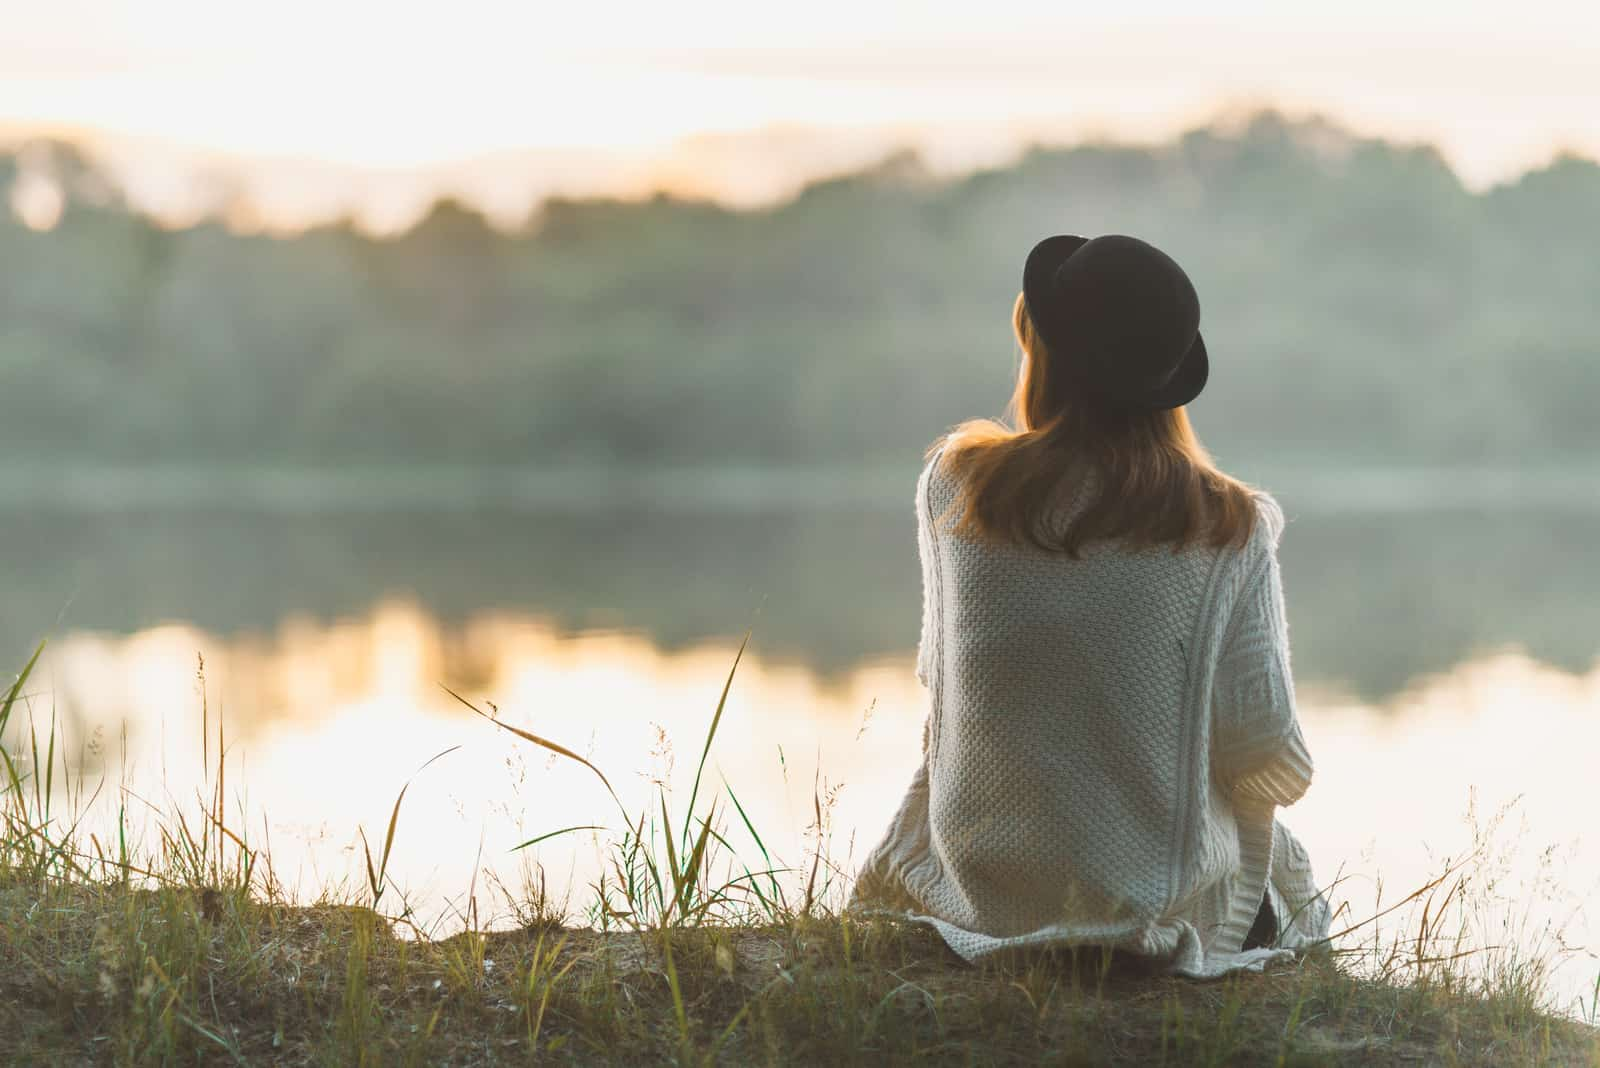 an imaginary woman with a hat on her head sits by the river